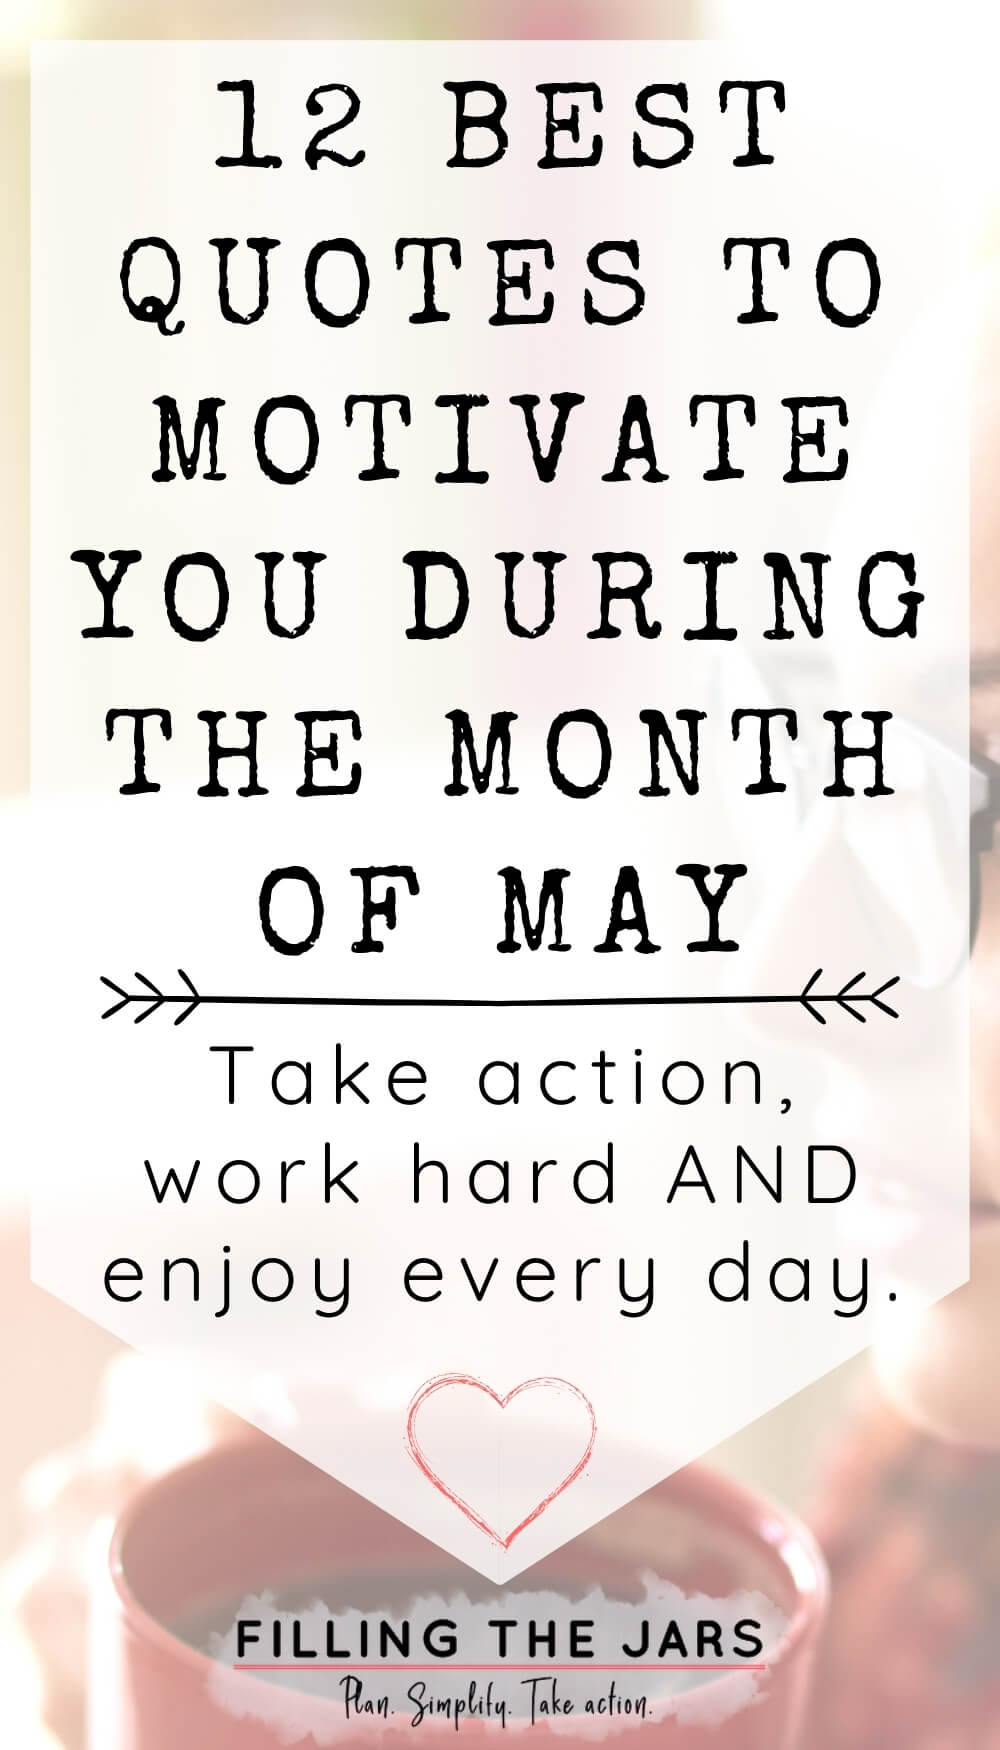 Text best quotes to motivate you during the month of May on white background over image of woman with glasses holding red coffee mug.